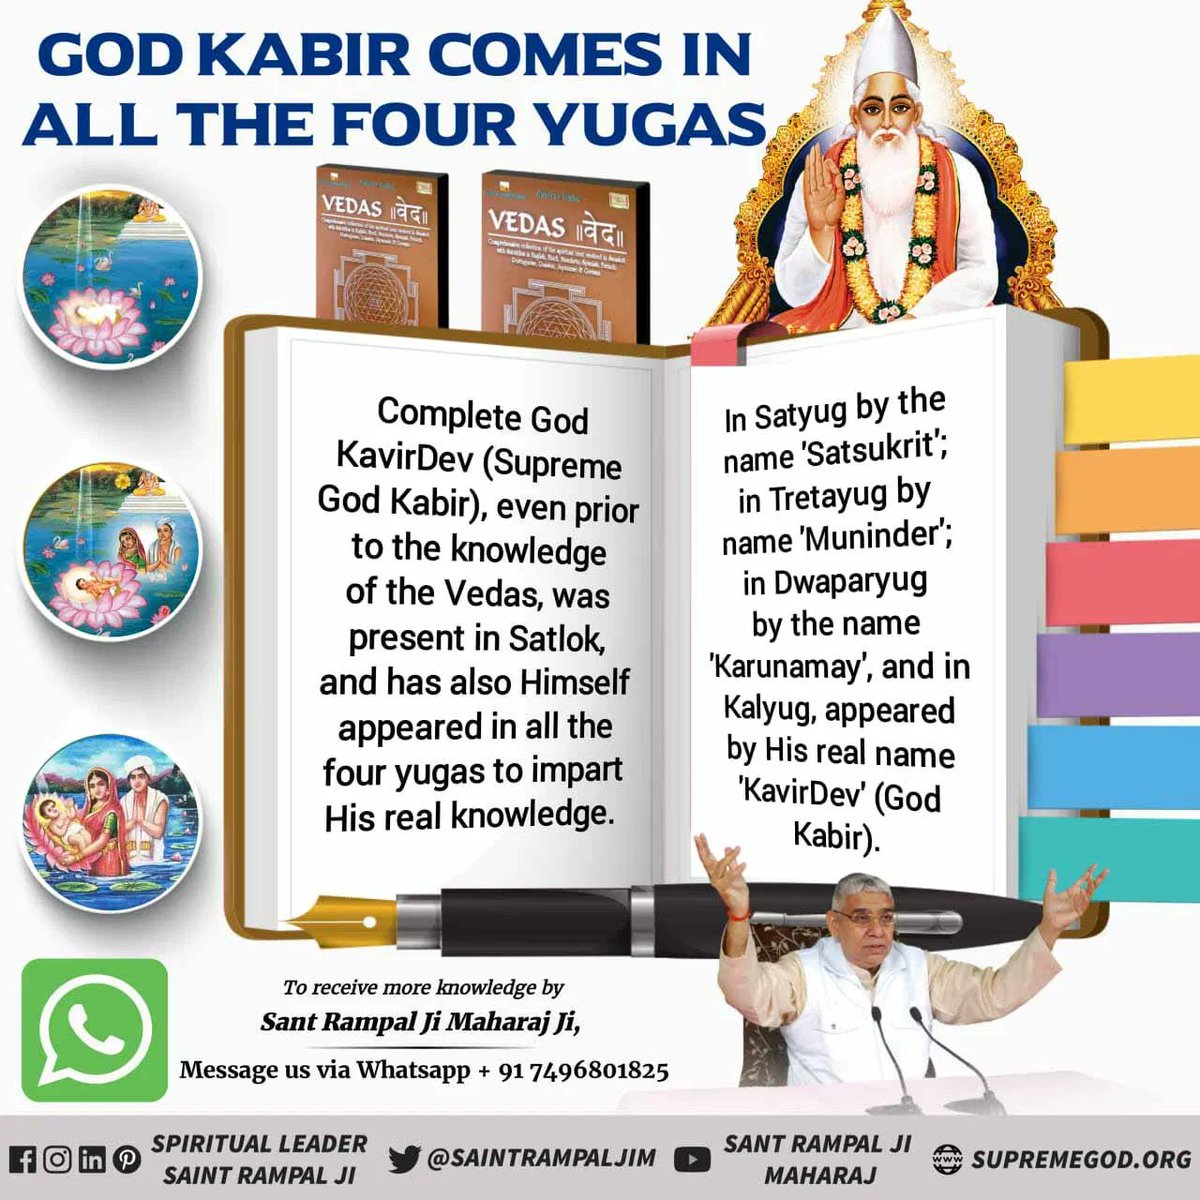 #FridayMotivation Supreme God appears here whenever He wishes; He never takes birth from a mother because He is the Originator of all. - Saint Rampal Ji mharaj